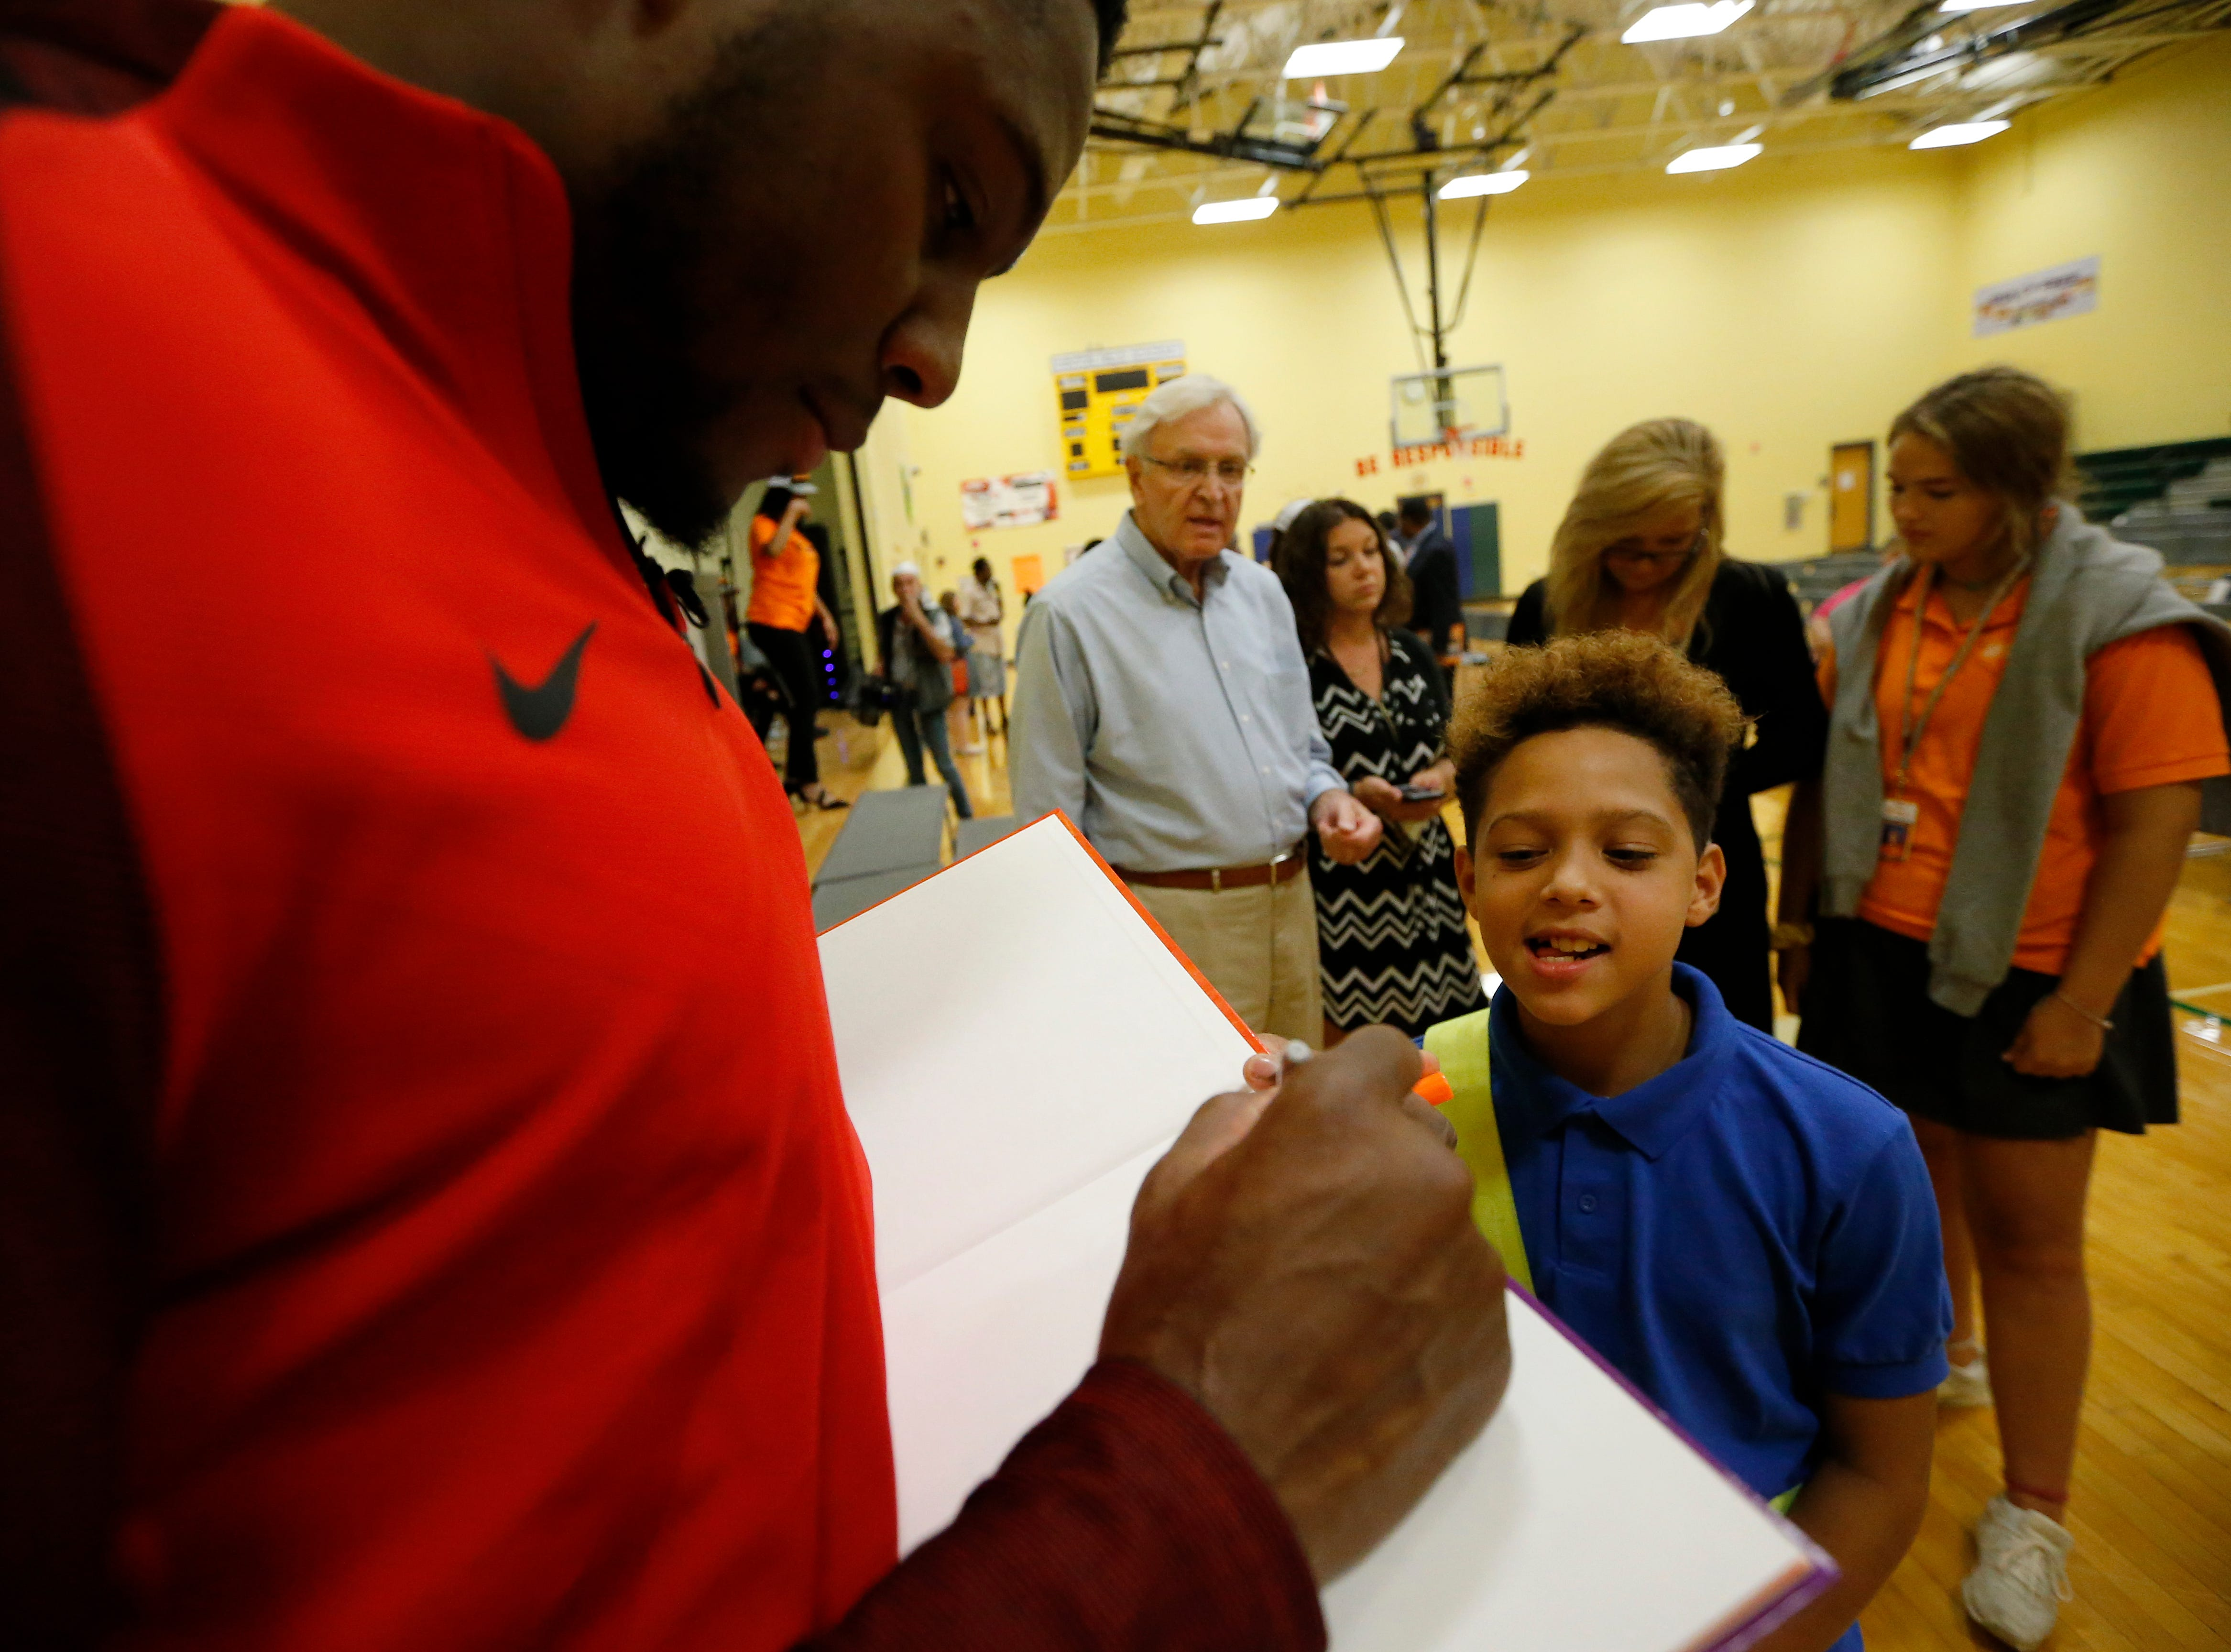 """Winning student Michael P. peeks as Carlos Dunlap signs a copy of """"Misunderstanding Micah"""" for him after an assembly at Winton Hills Academy in Cincinnati on Tuesday, Sept. 18, 2018. Five students of the academy were named winners, becoming published authors, of a national contest for a book about anti-bullying. The students' book, """"Misunderstanding Micah"""" was selected as the winner of the 2018 National Student Book Scholar Competition by The National Youth Foundation."""